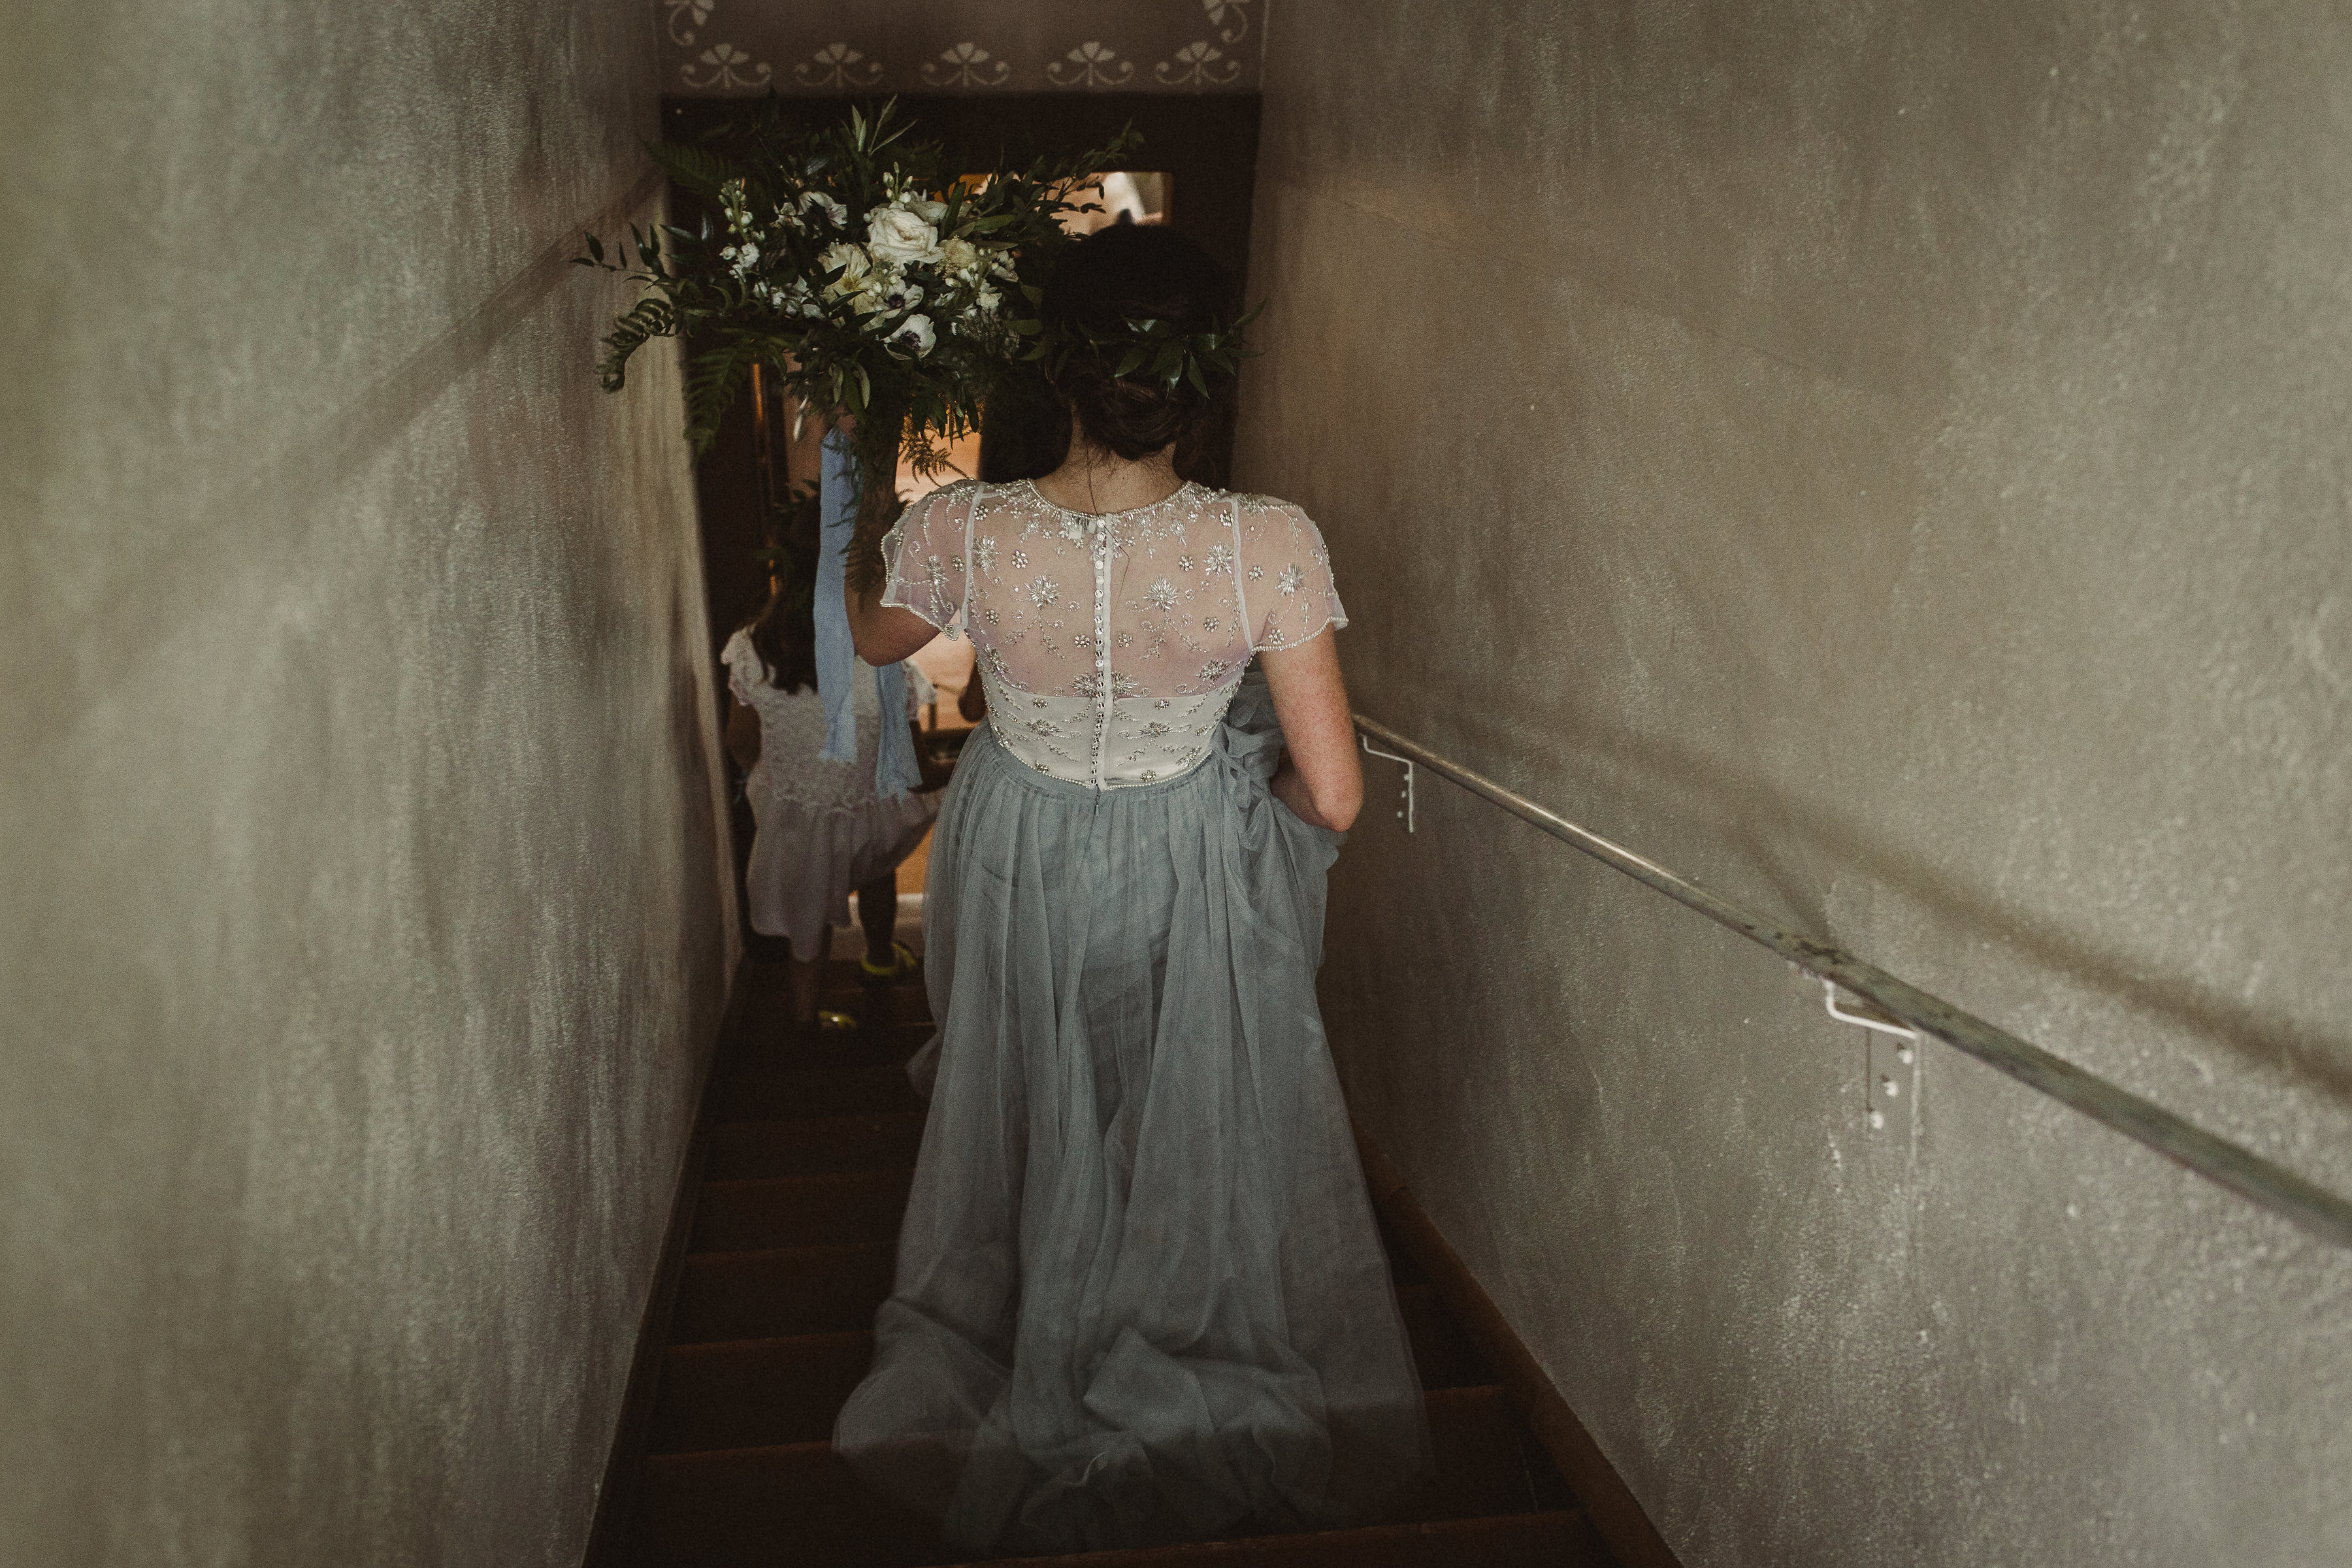 Bride is blue tulle skirt walks down stairs and goes to her wedding